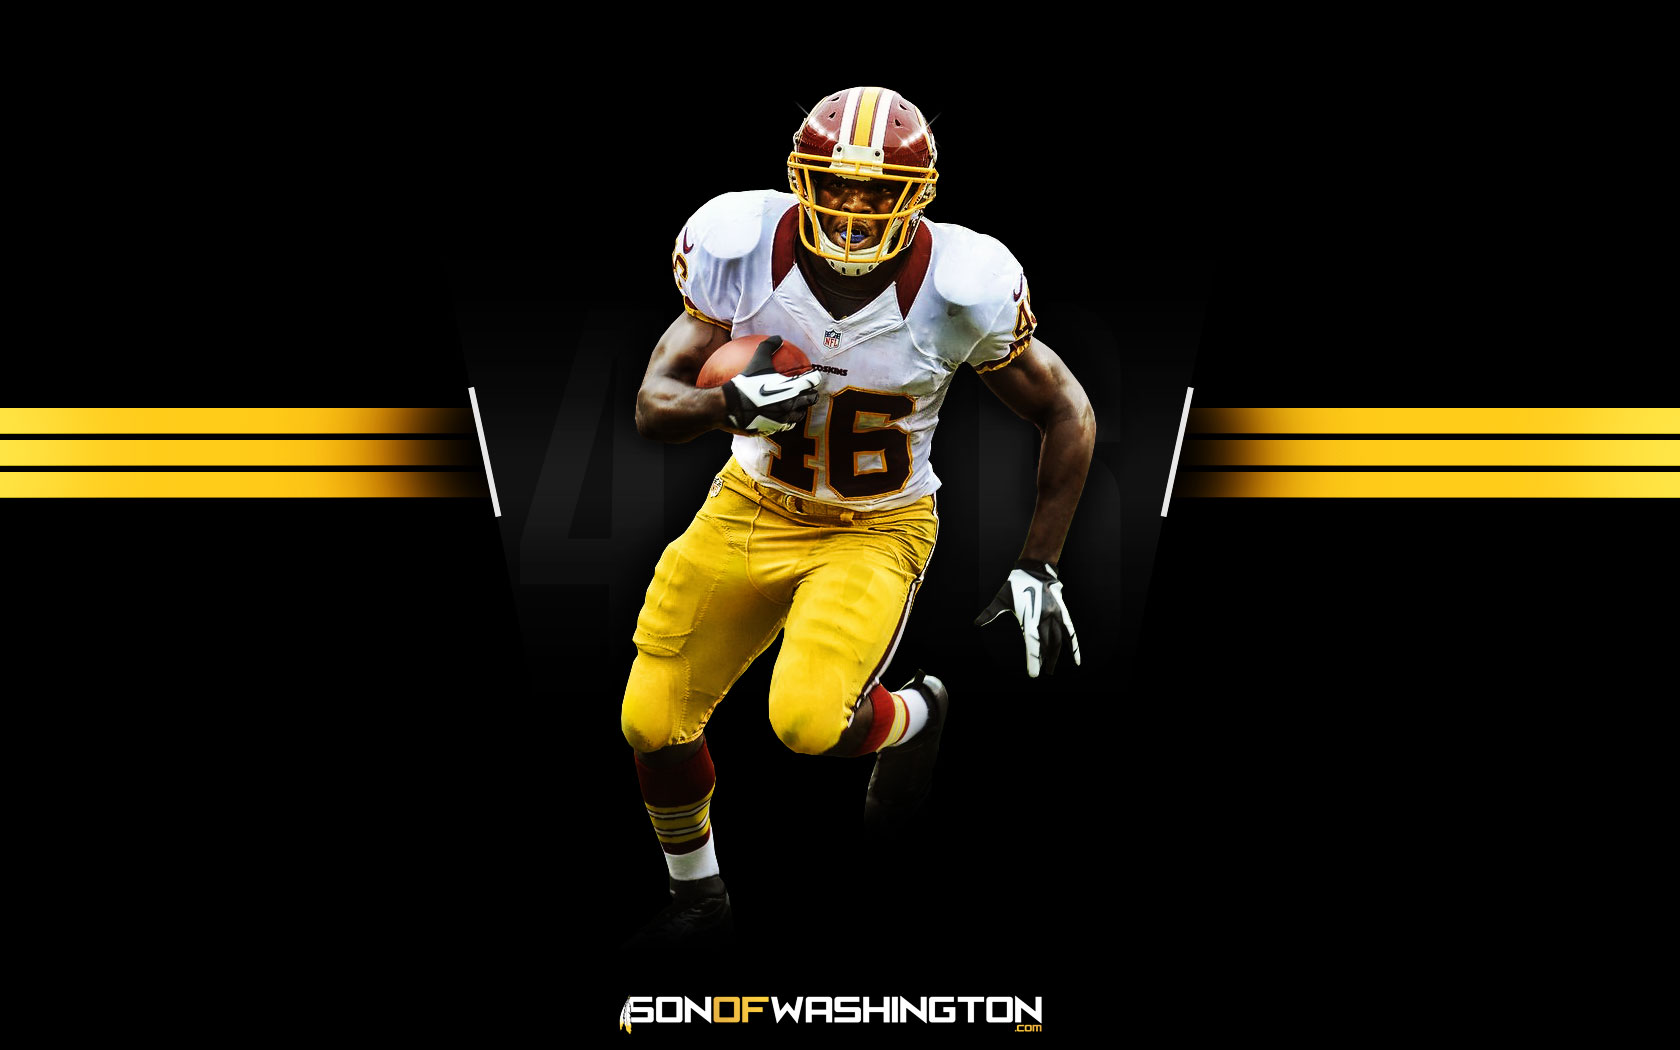 Washington Redskins wallpaper background image Washington Redskins 1680x1050